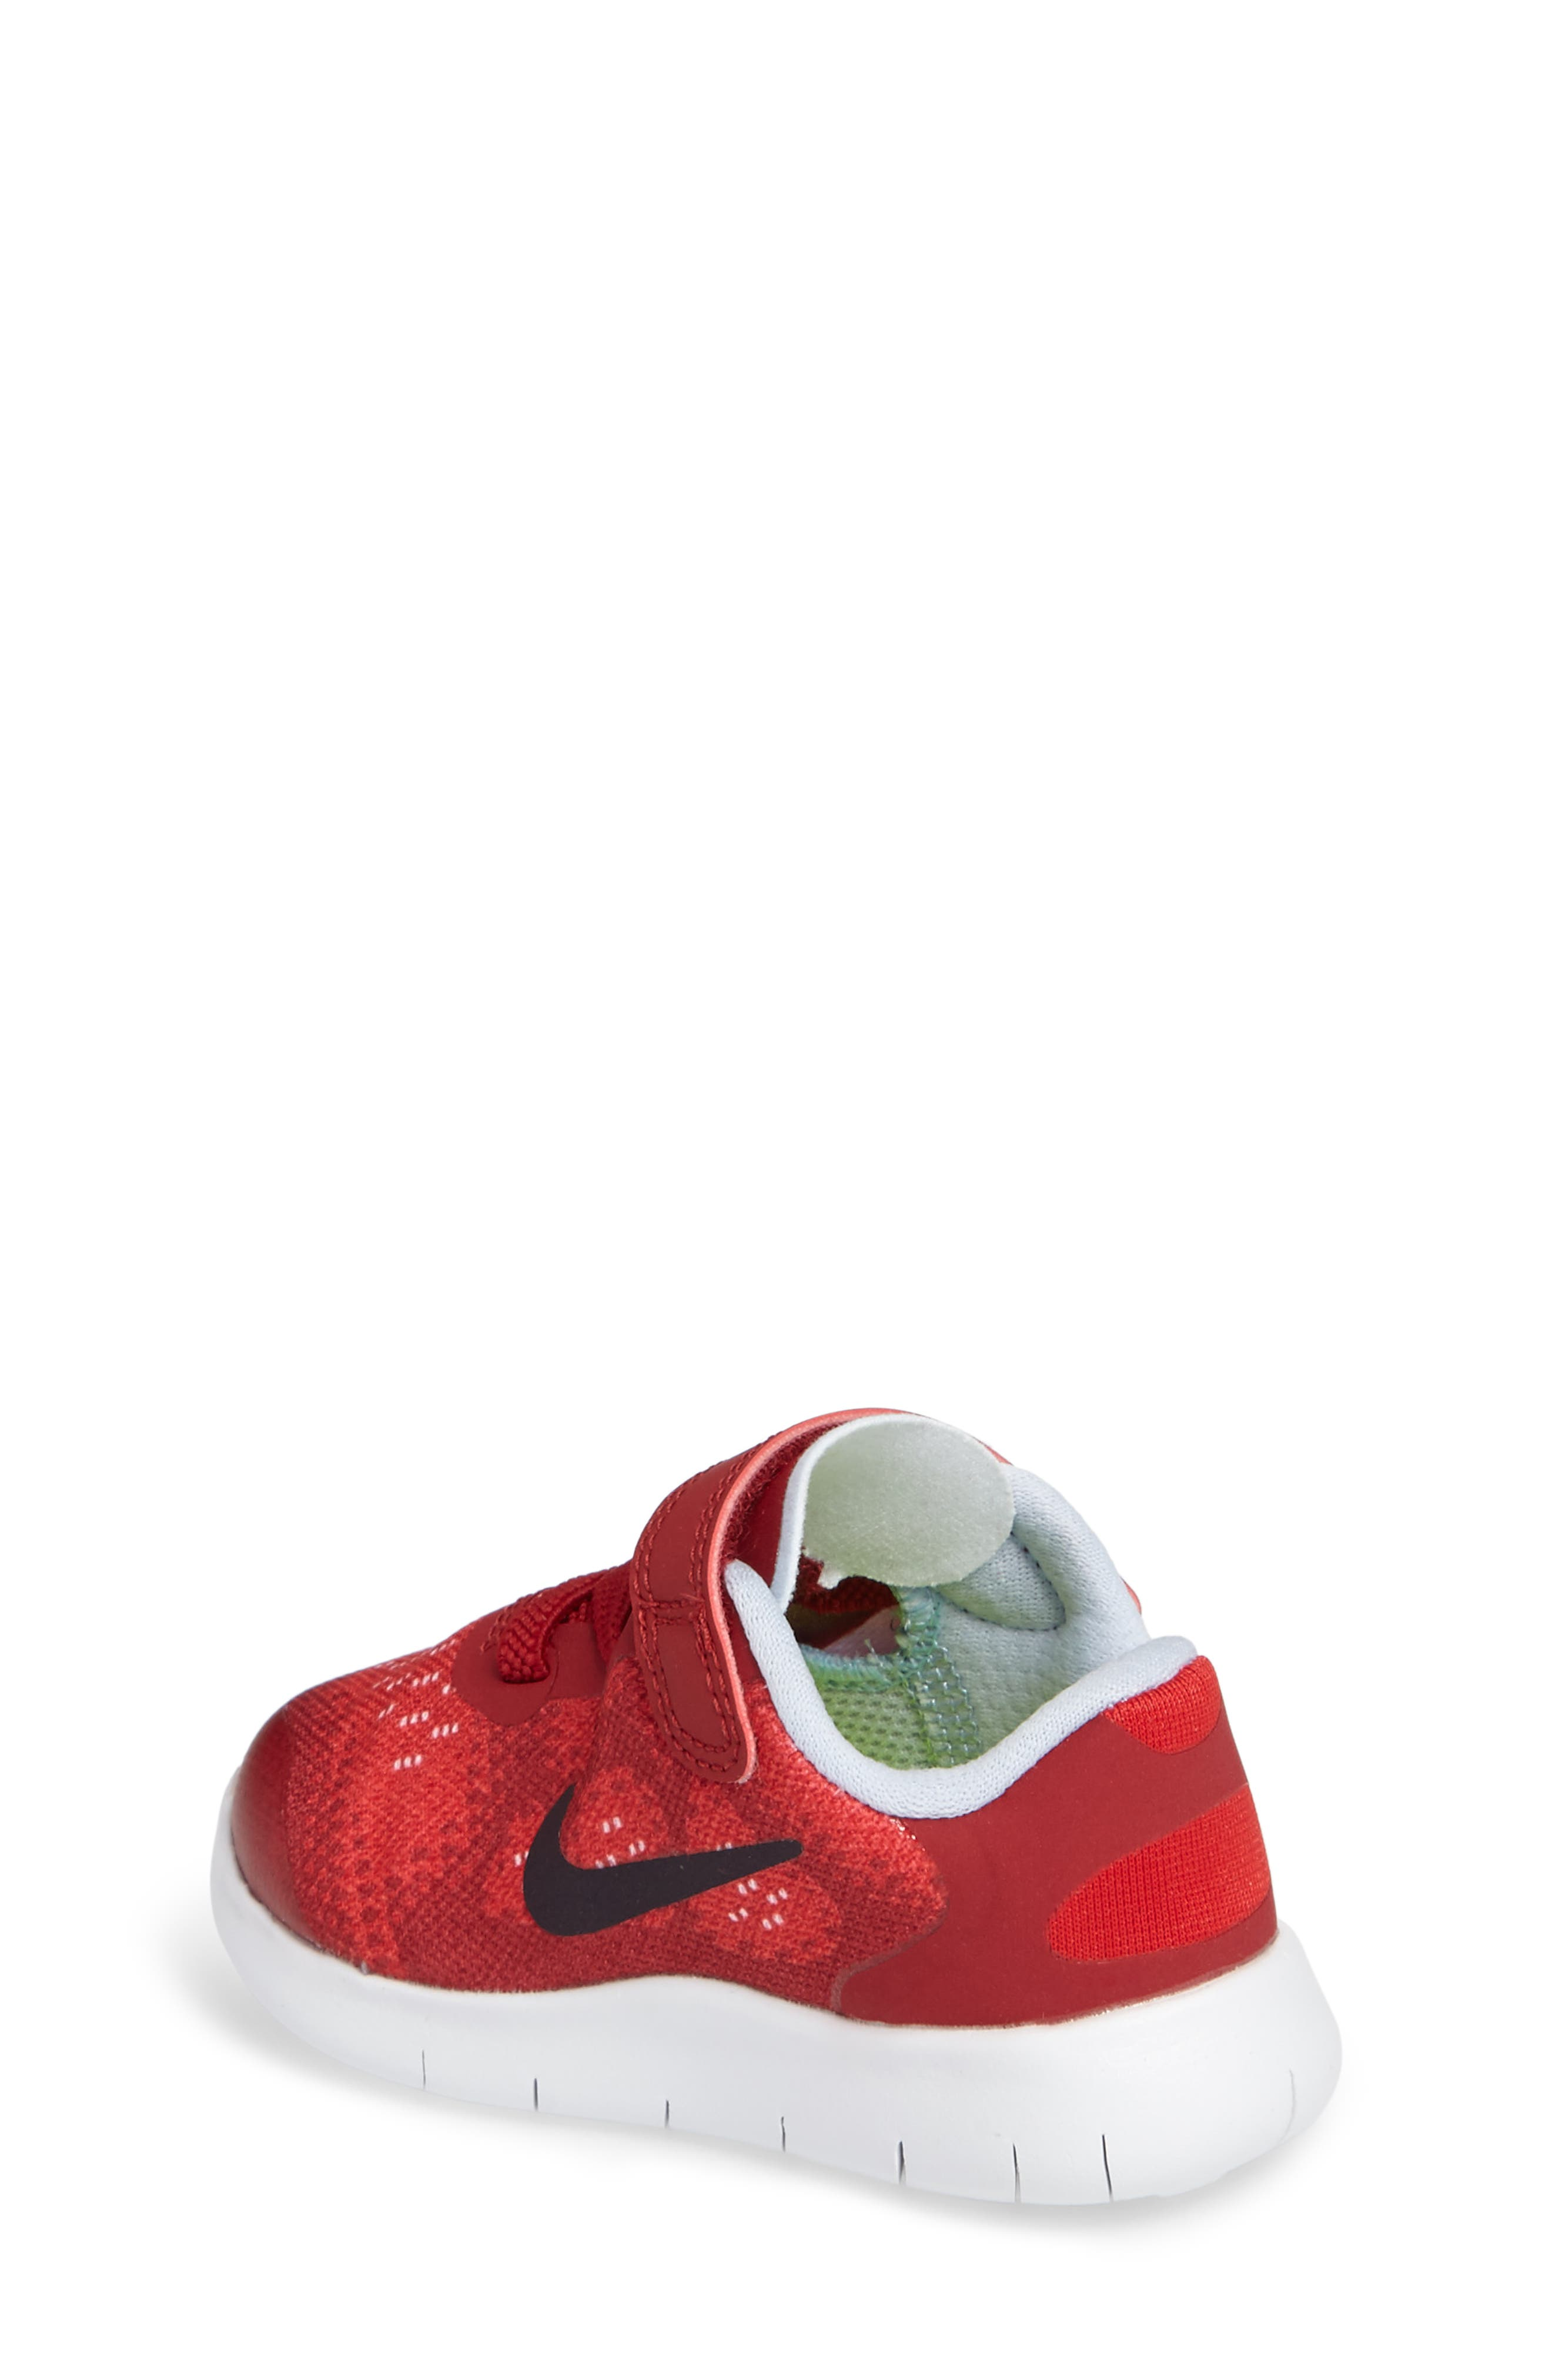 981c1466b ... australia nike air rejuven8 mule 3 red white sandals nike shoes for  kids nordstrom nike benassi